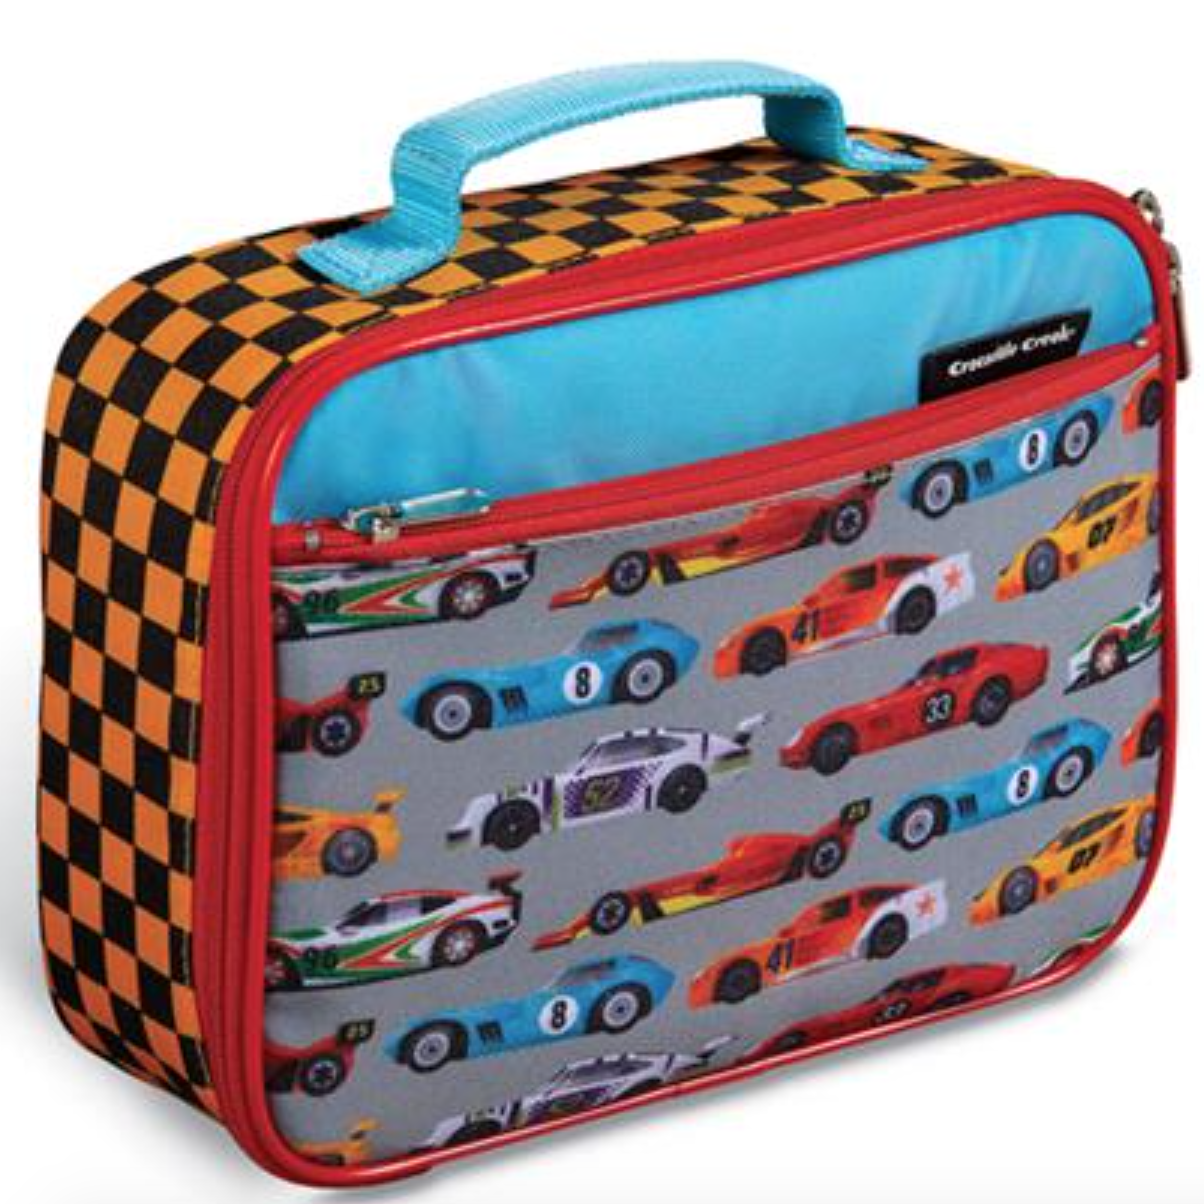 Croc Creek Classic Lunchbox Race Car Make school lunches more fun with a Crocodile Creek Race Car Lunchbox. This high-quality lunch box is sturdy and durable with extra lining to keep food fresh and padding and structure to prevent crushing. There is plenty of storage space to fit a variety of back to school accessories and a sturdy nylon handle for easy portability. Easy to use zippers for little hands to open and close. Simply wipe the lunch box with a damp cloth after each use for easy cleaning.